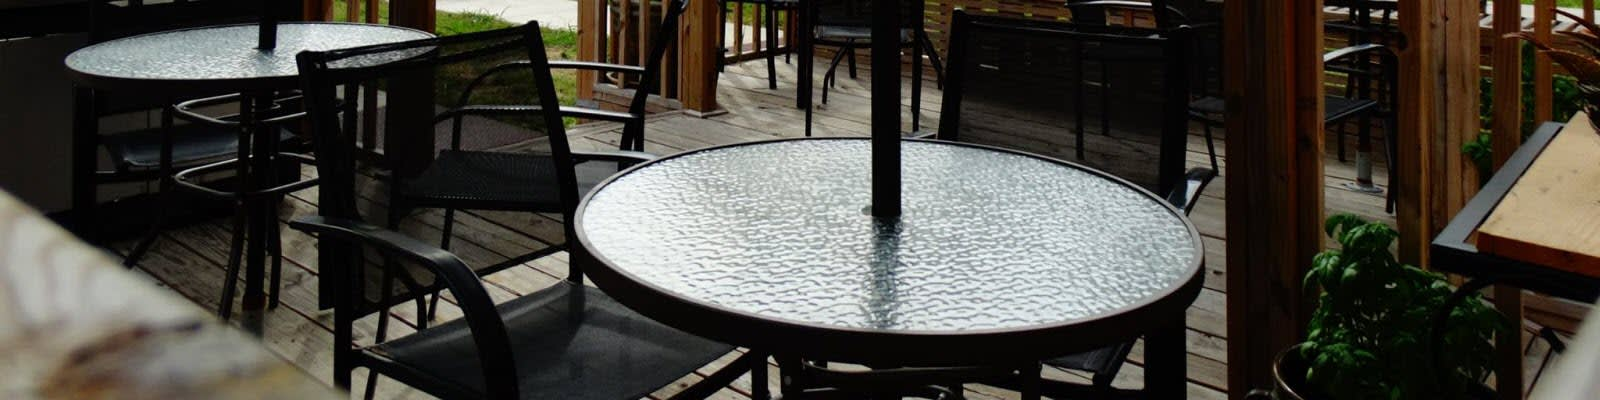 Commercial patio chairs and tables